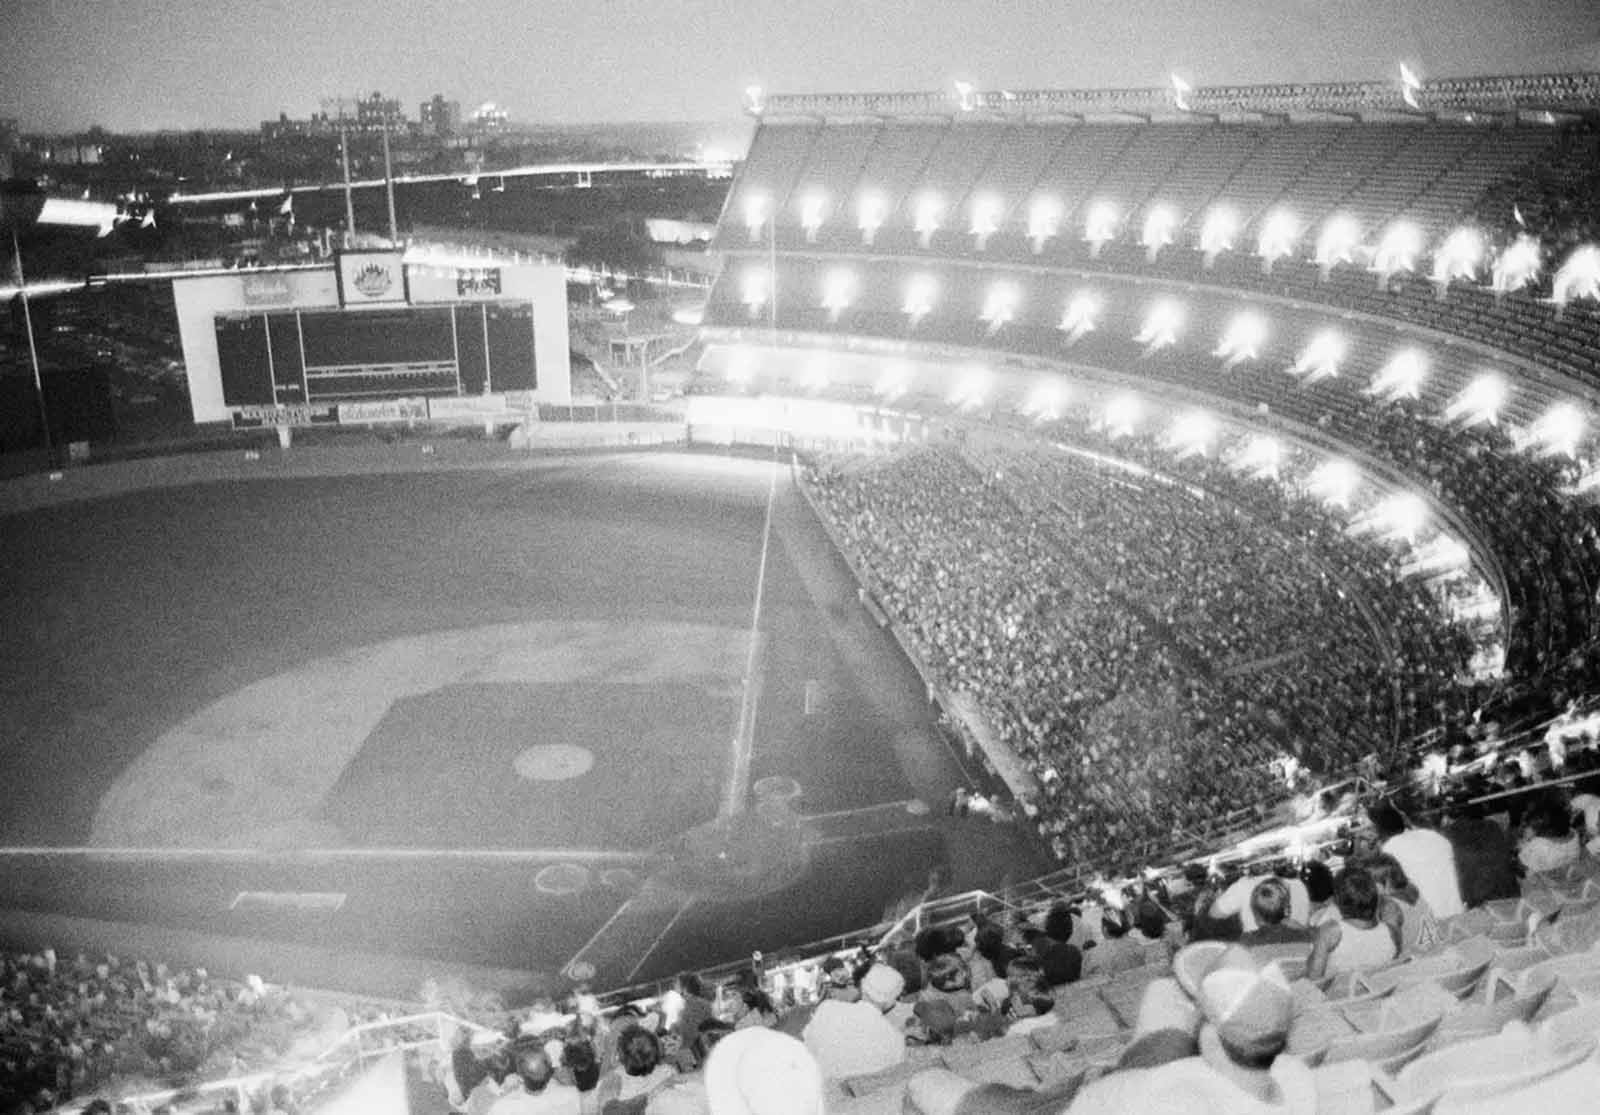 New York's Shea Stadium lies in darkness during the bottom of the sixth inning after the lights went out during the game with the Chicago Cubs, July 13, 1977.